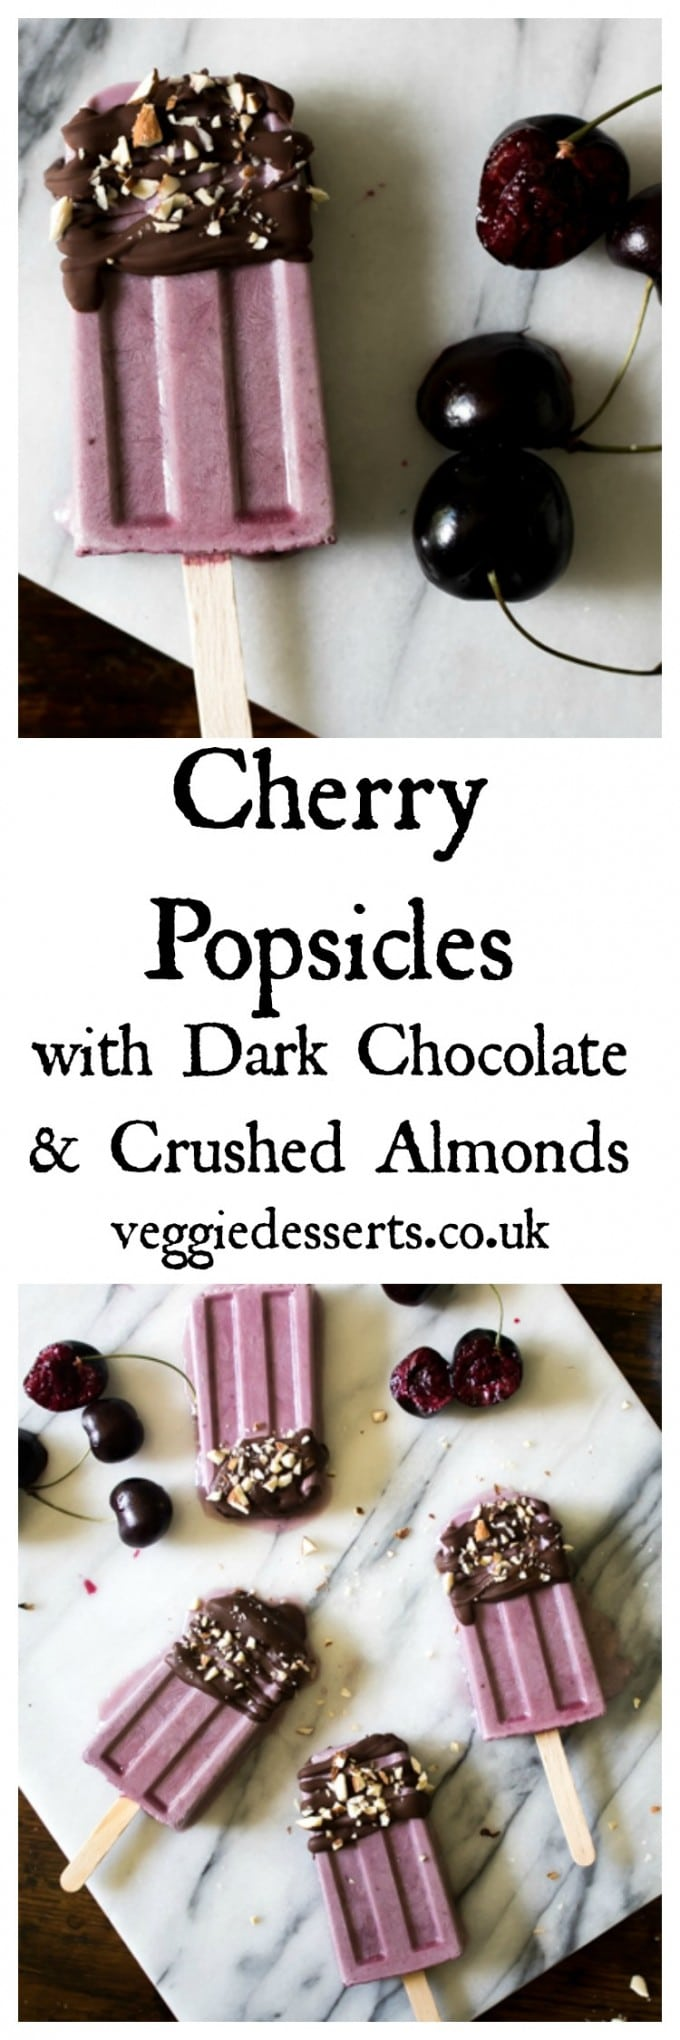 These cherry popsicles are creamy and rich with a lovely flavour from fresh cherries. The cherry flavour mixes well with the coconut, milk and almond. When the dark chocolate drizzle hits the frozen ice lollies, it hardens instantly into a decadent shell. Perfect sprinkled with crushed almonds. #popsicles #cherry #cherryrecipe #icelollies